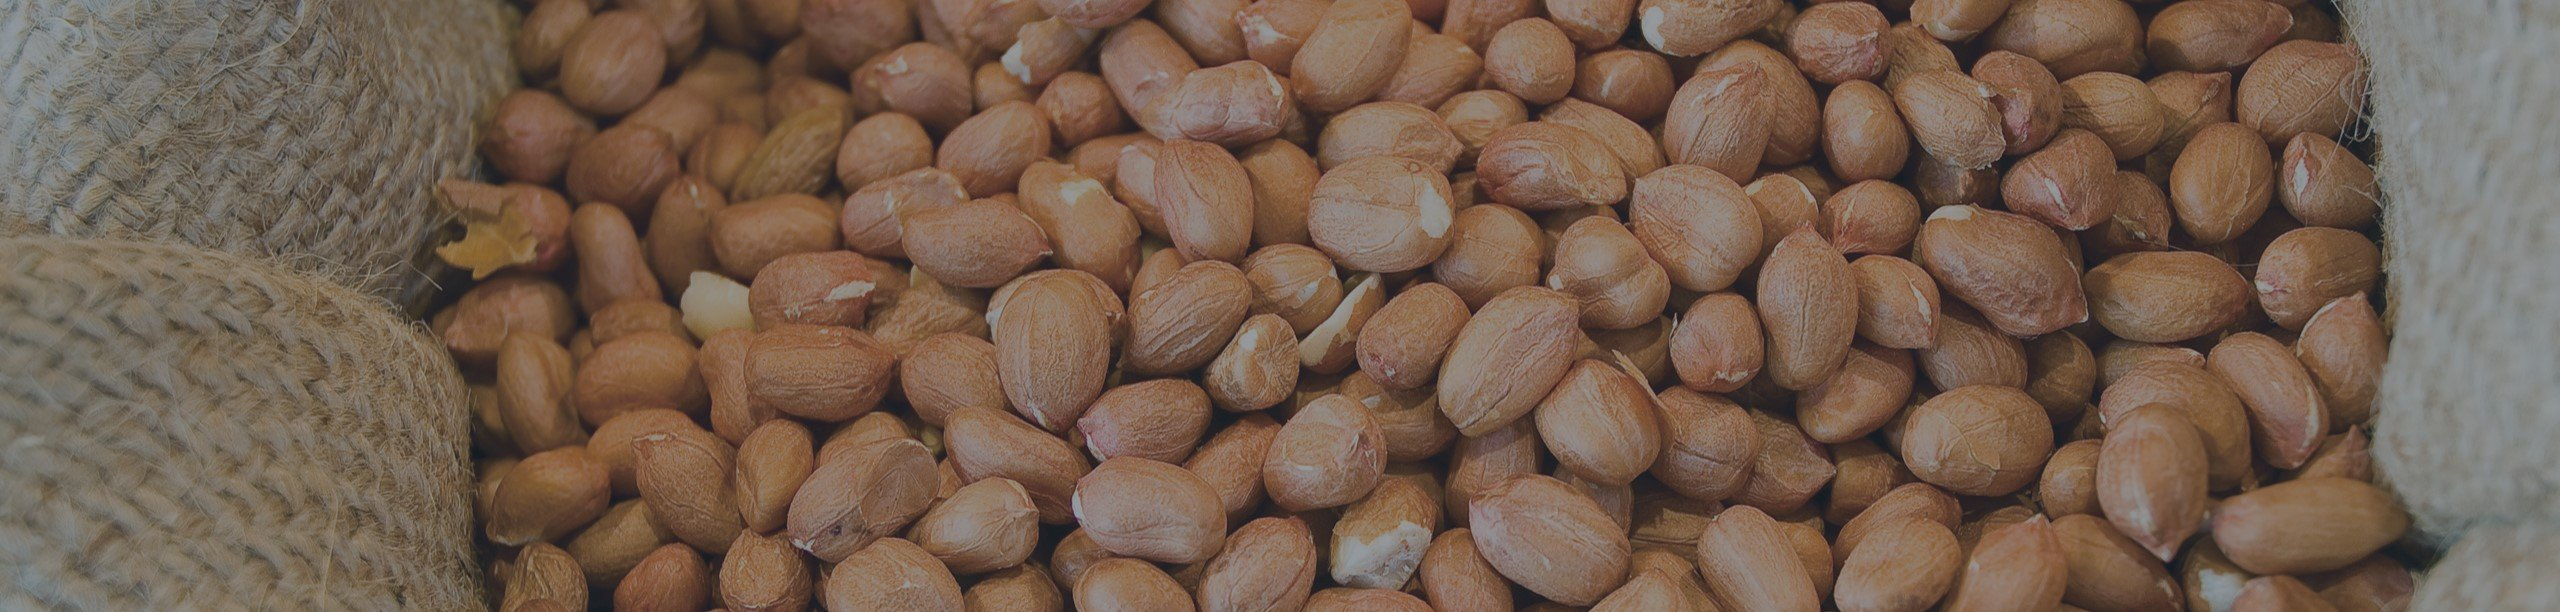 peanut or ground nut prices